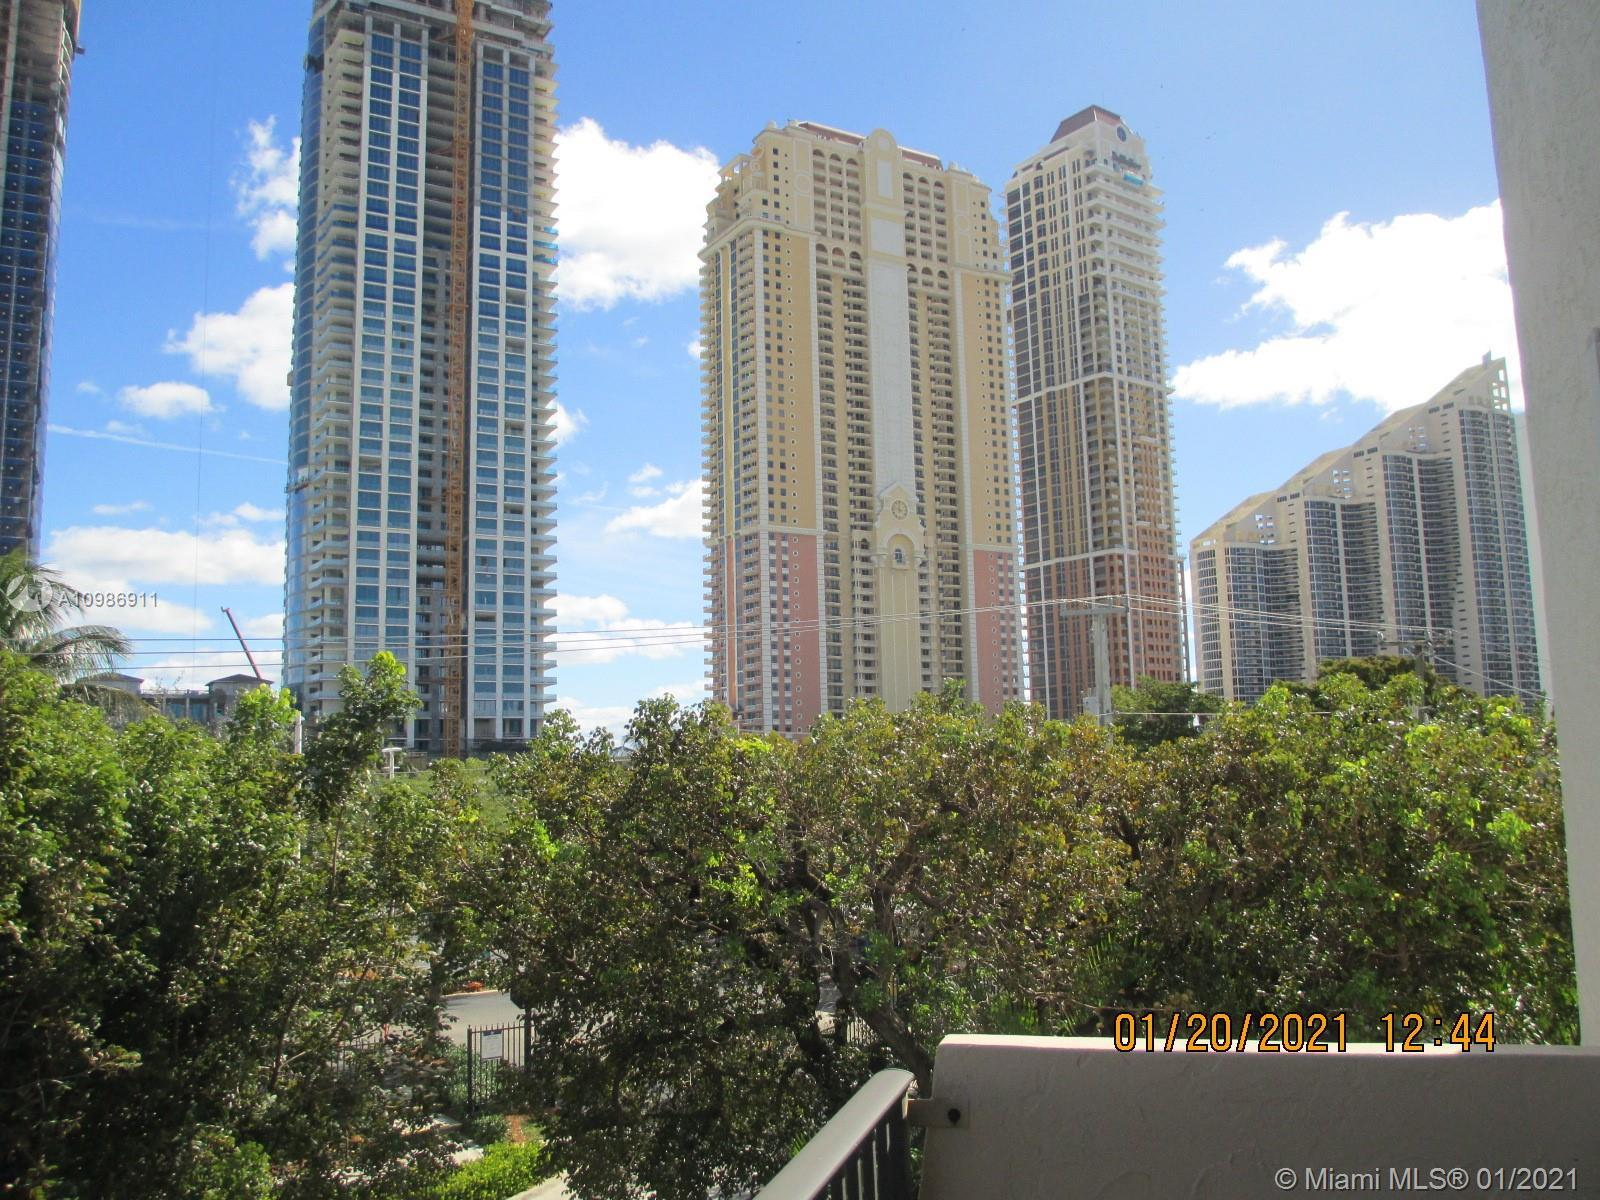 !! LOCATION !! LOCATION !! RIGHT IN THE HEART OF SUNNY ISLES BEACH !! NICE FURNISHED 1BD/2BA. LARGE